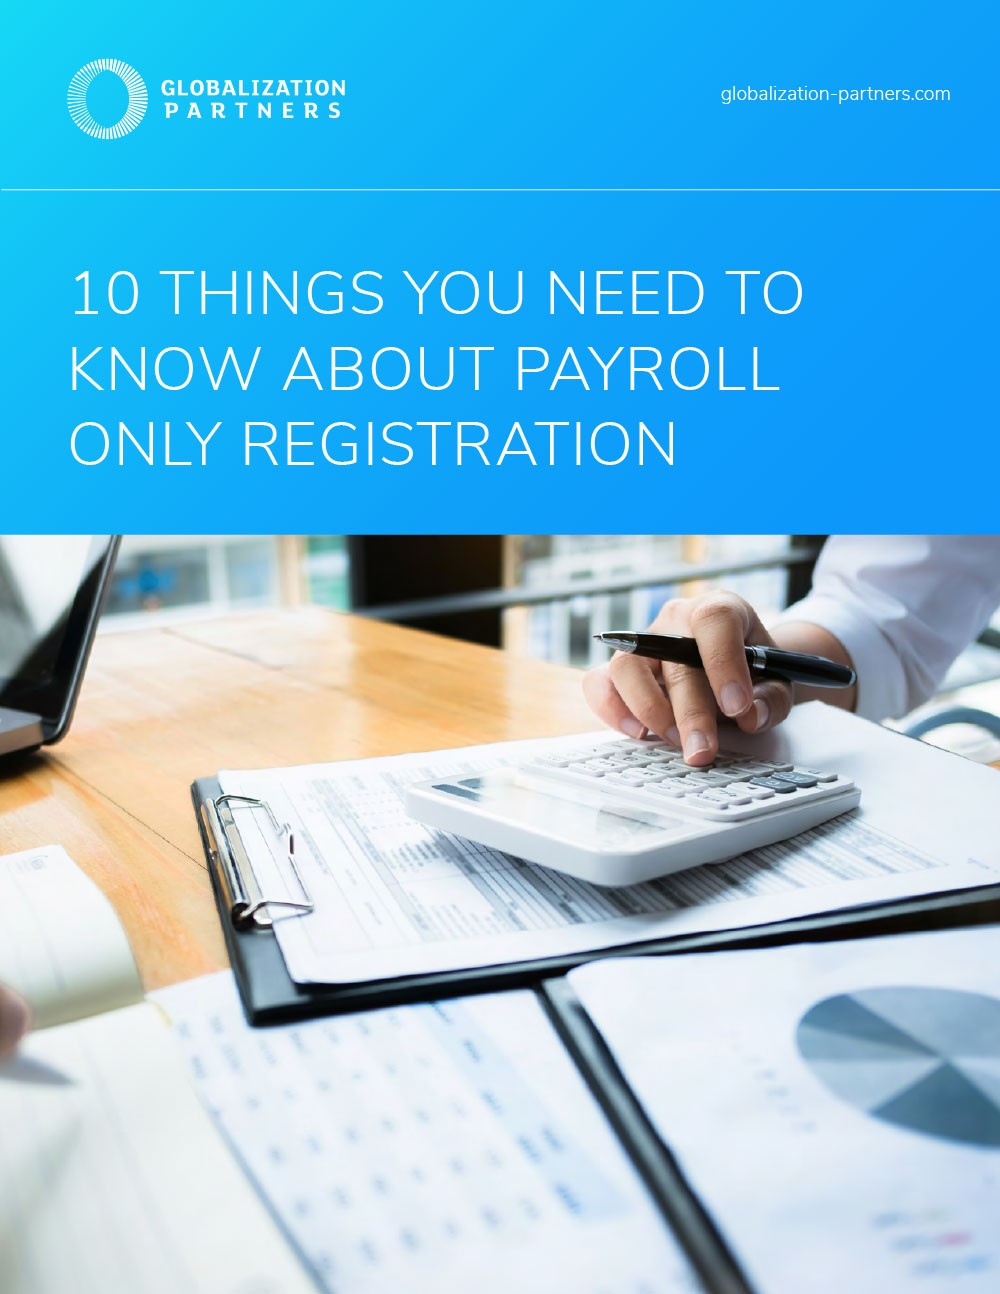 10 things you need to know about payroll only registration ebook cover - 10 Things You Need to Know About Payroll Only Registration eBook